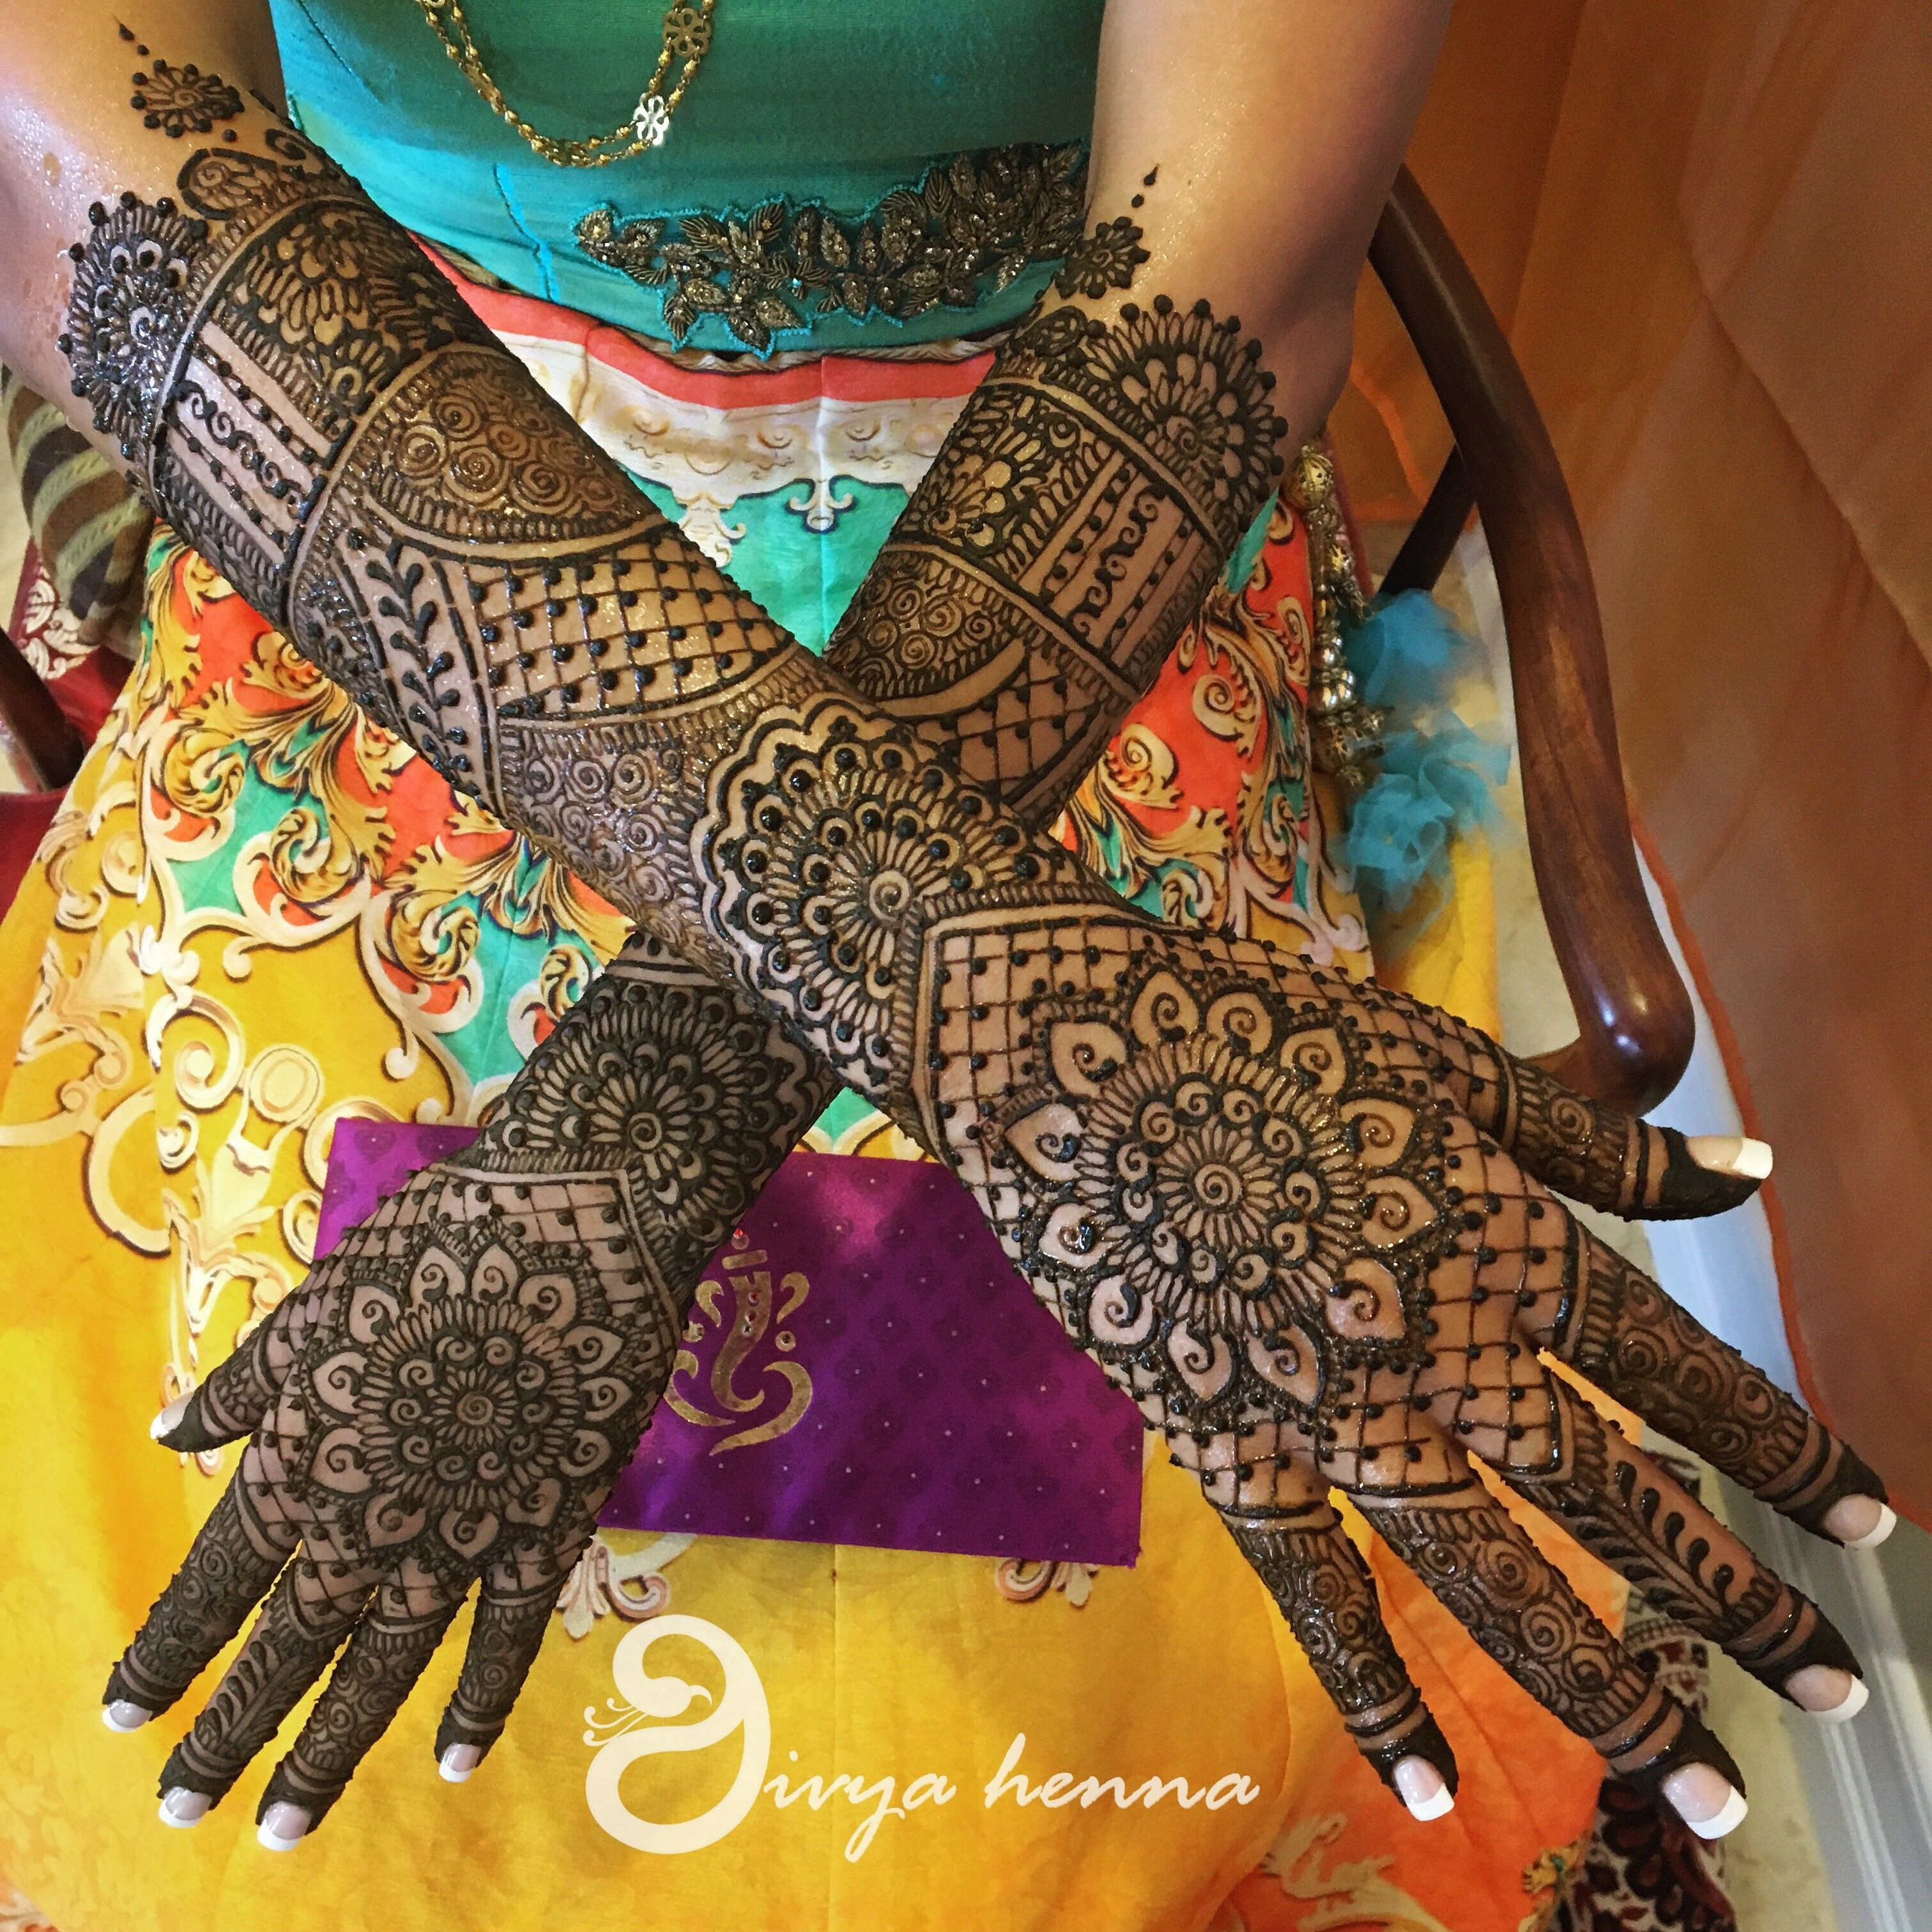 Intricate Henna Designs: Intricate Mehndi Designs On Hands